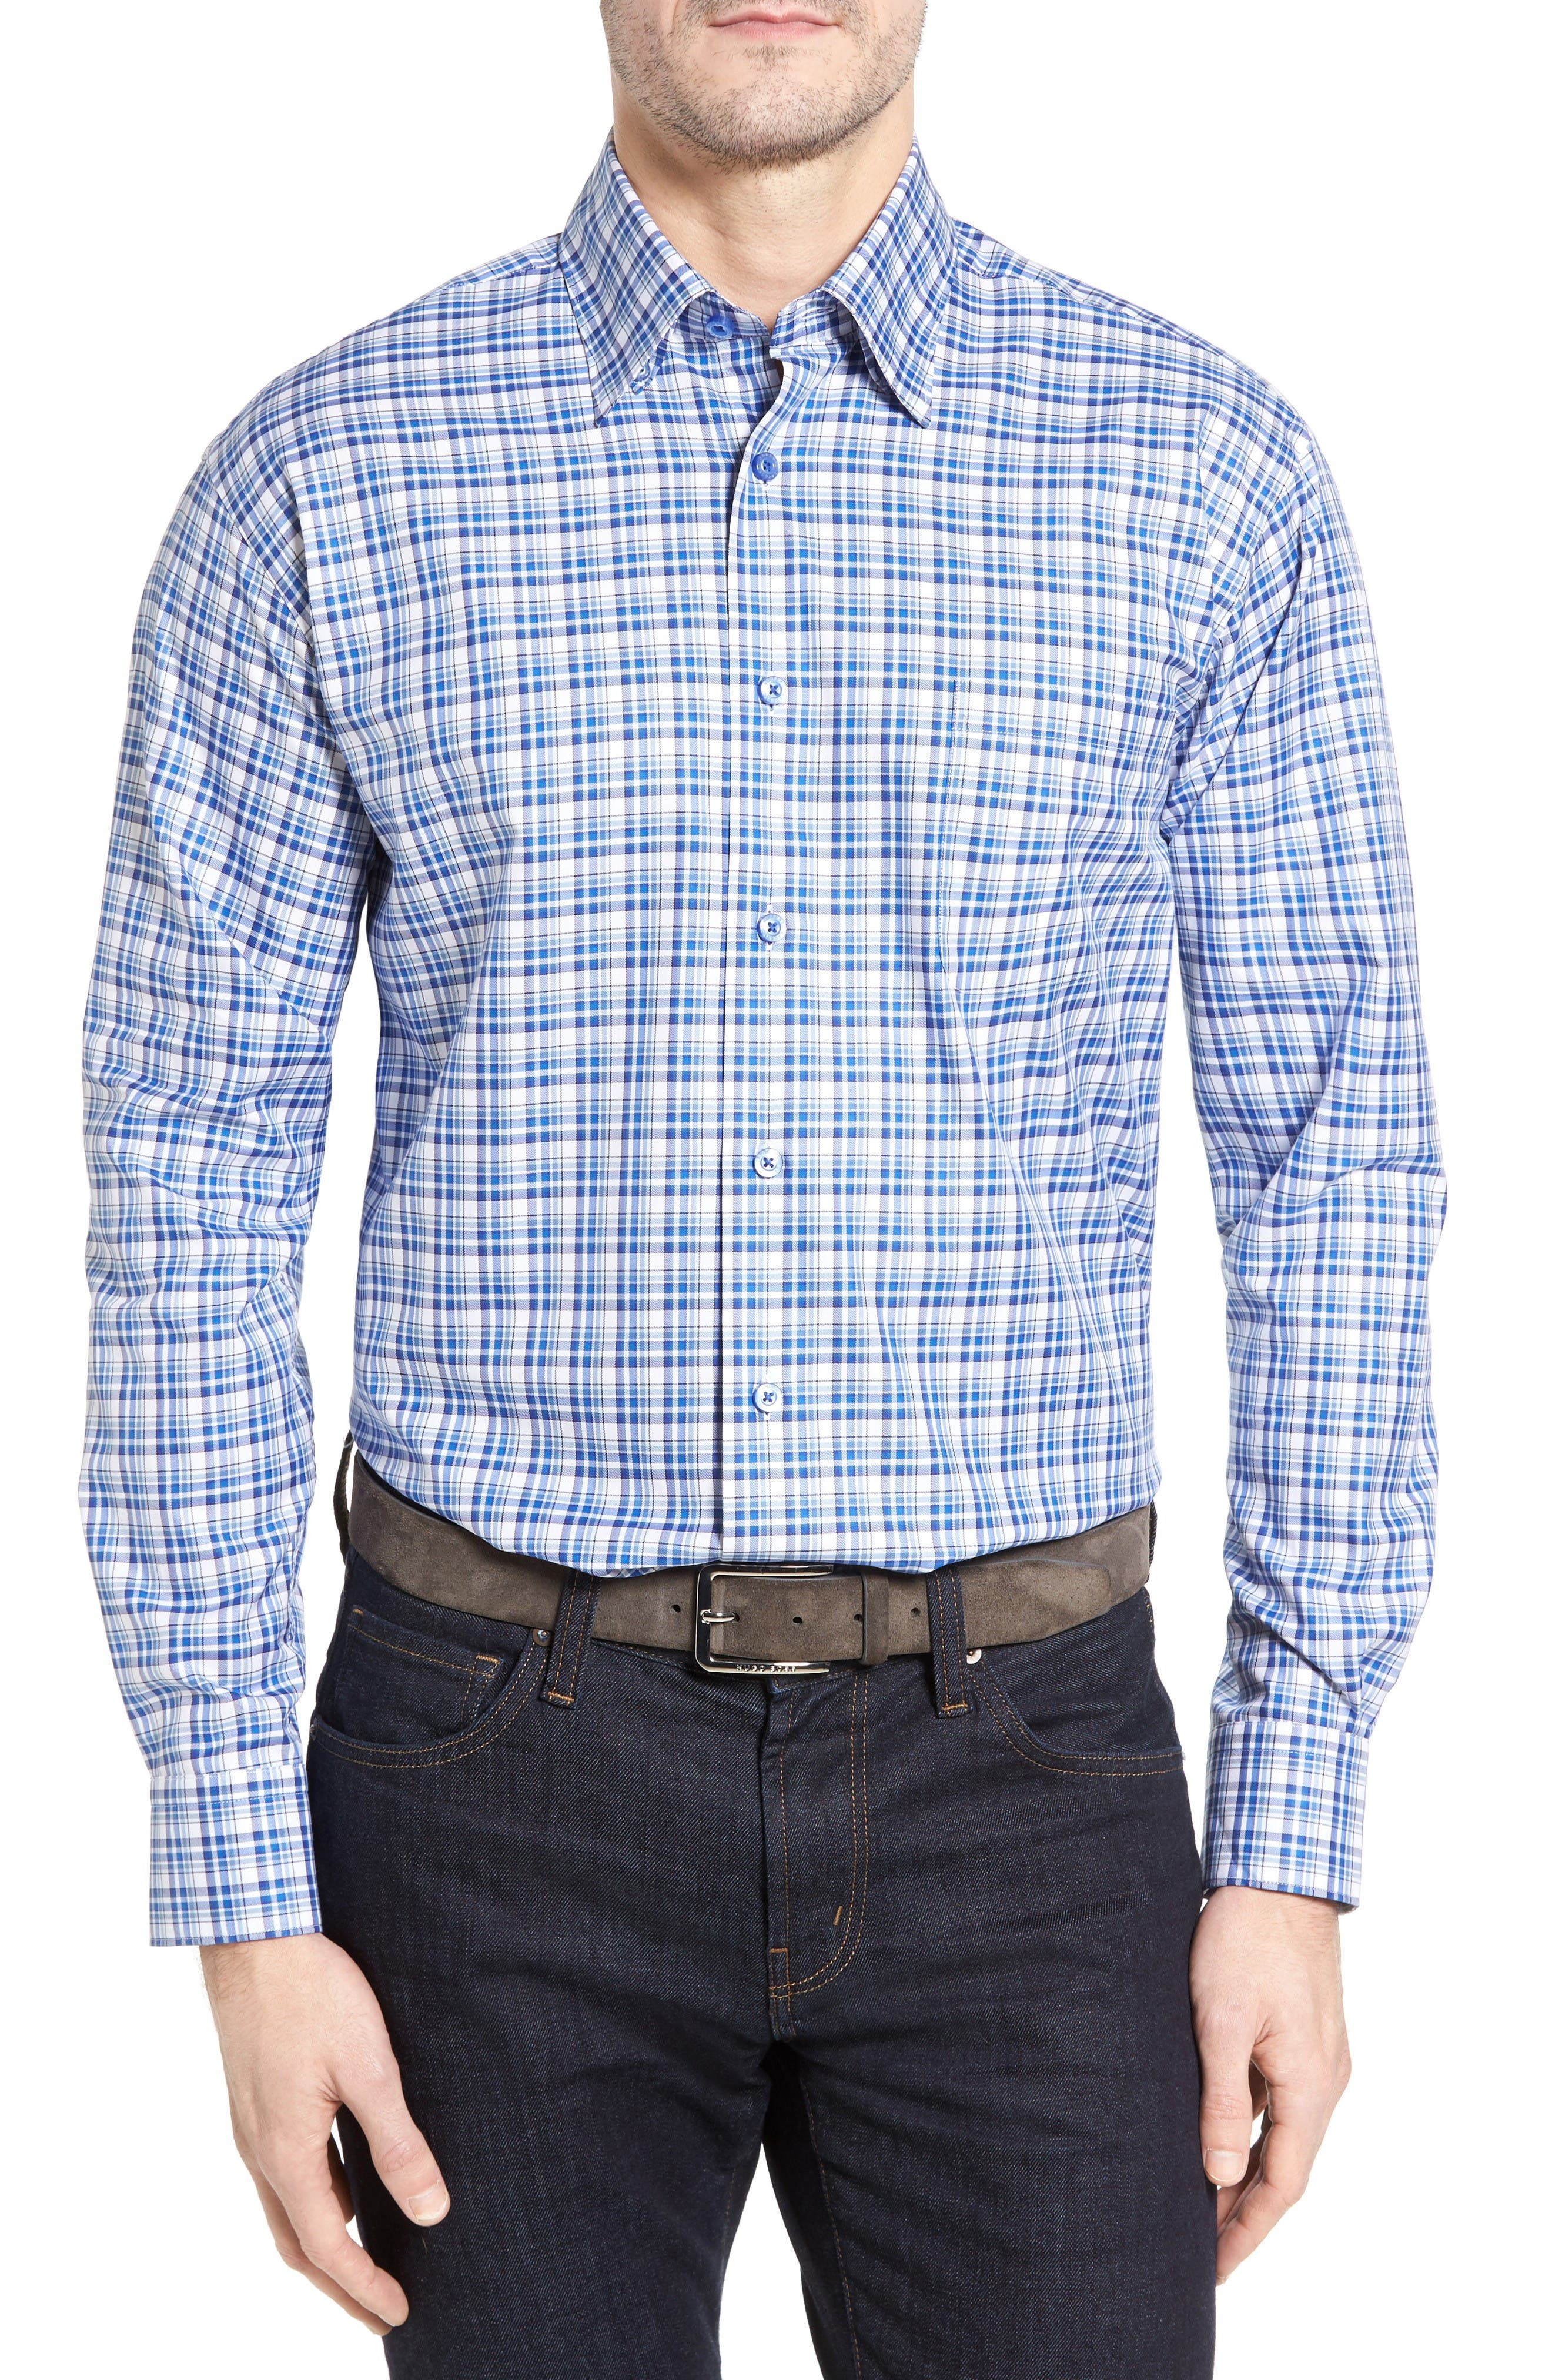 Anderson Classic Fit Plaid Micro Twill Sport Shirt,                             Main thumbnail 1, color,                             Pacific